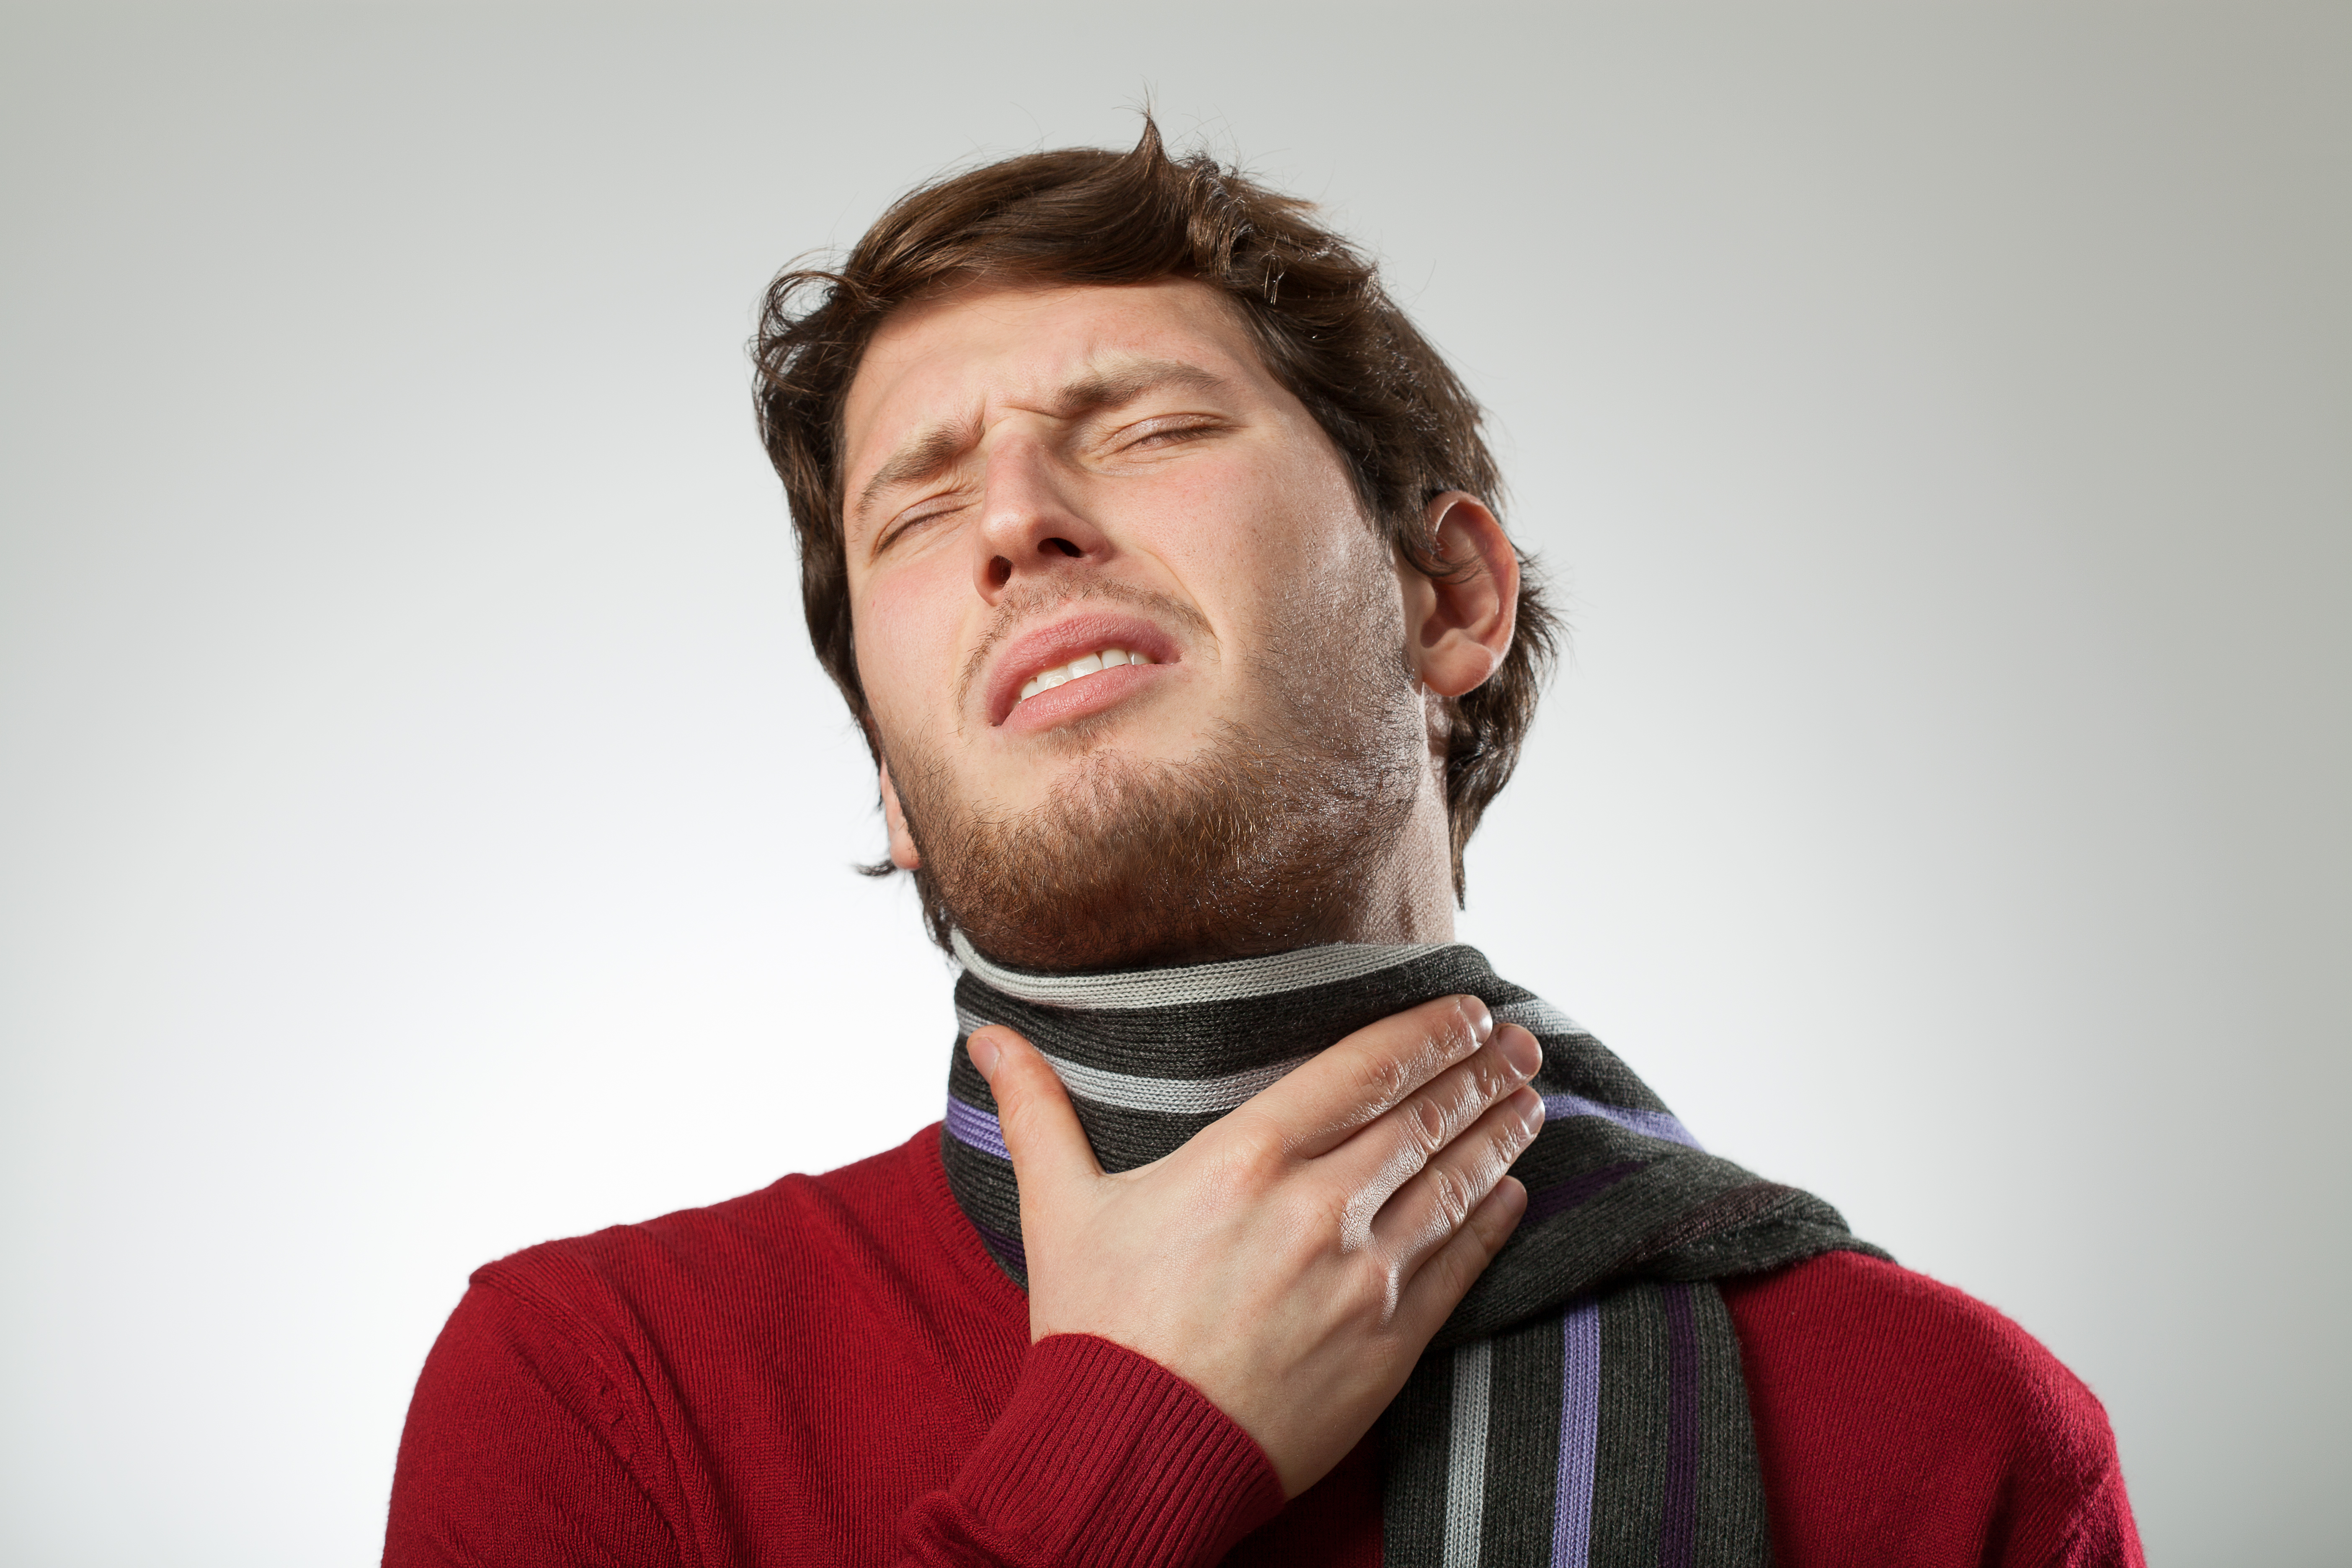 treating your sore throat without medication: how home remedies can